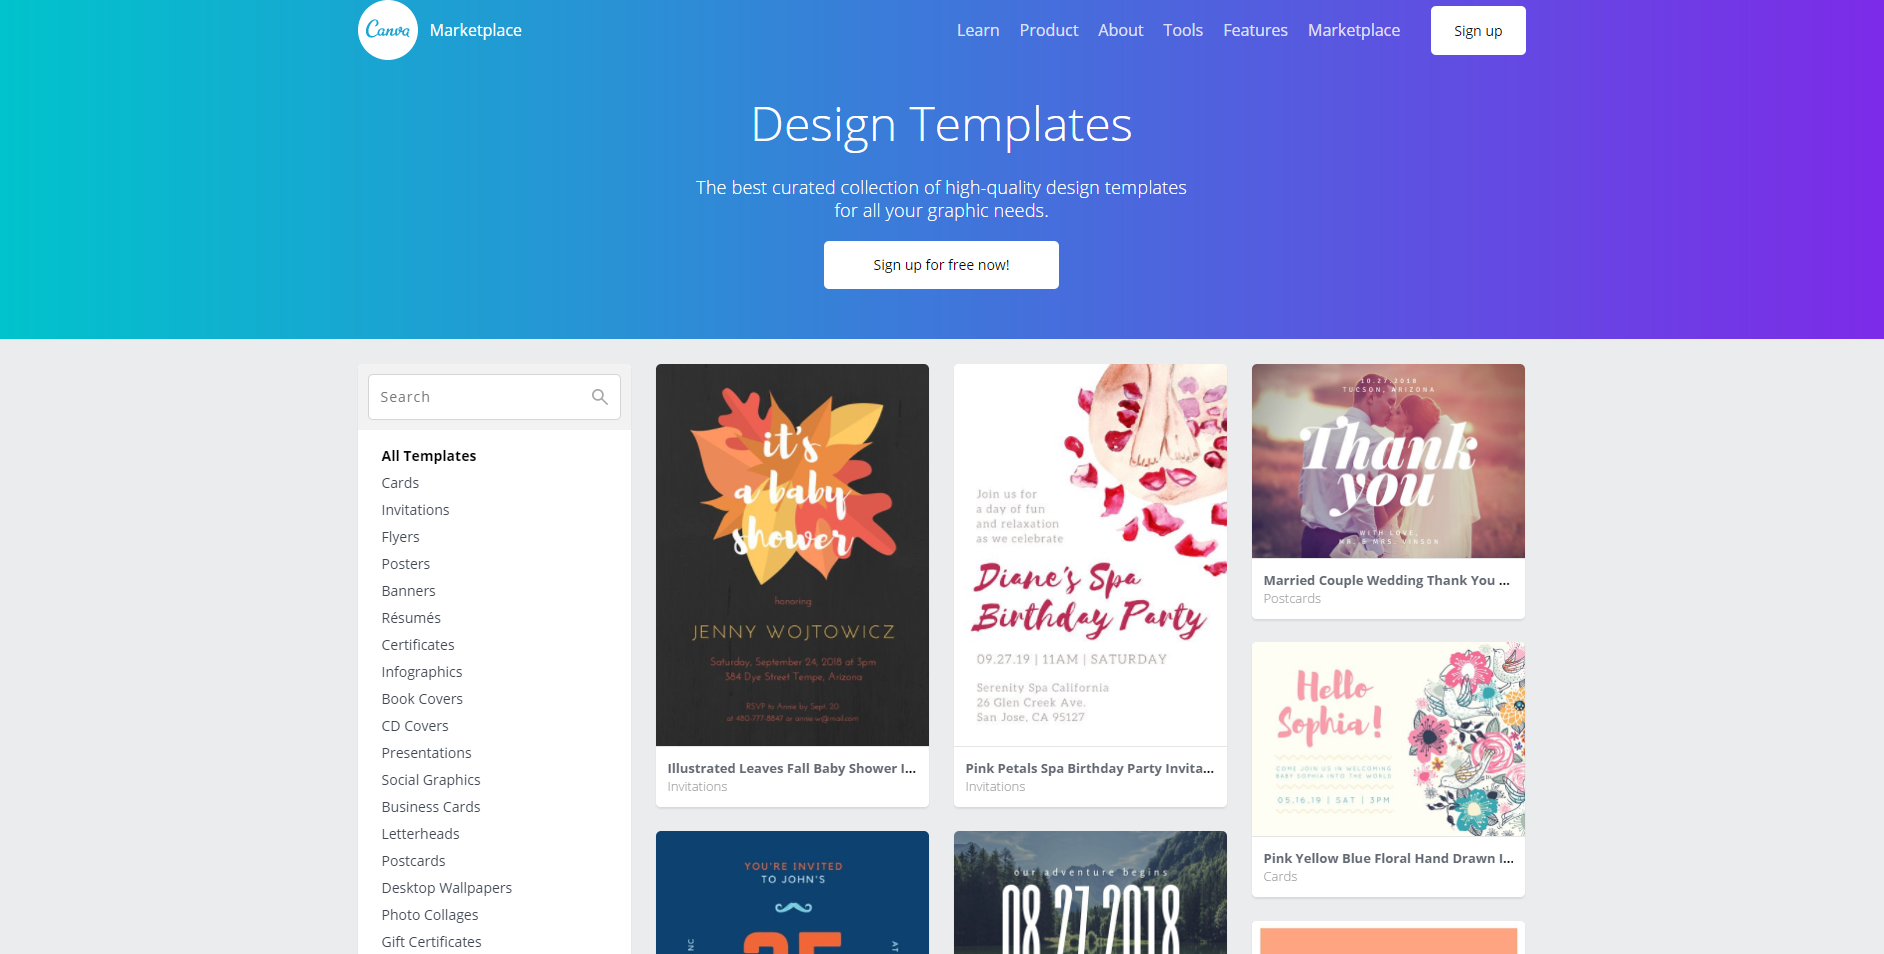 Canva design templates